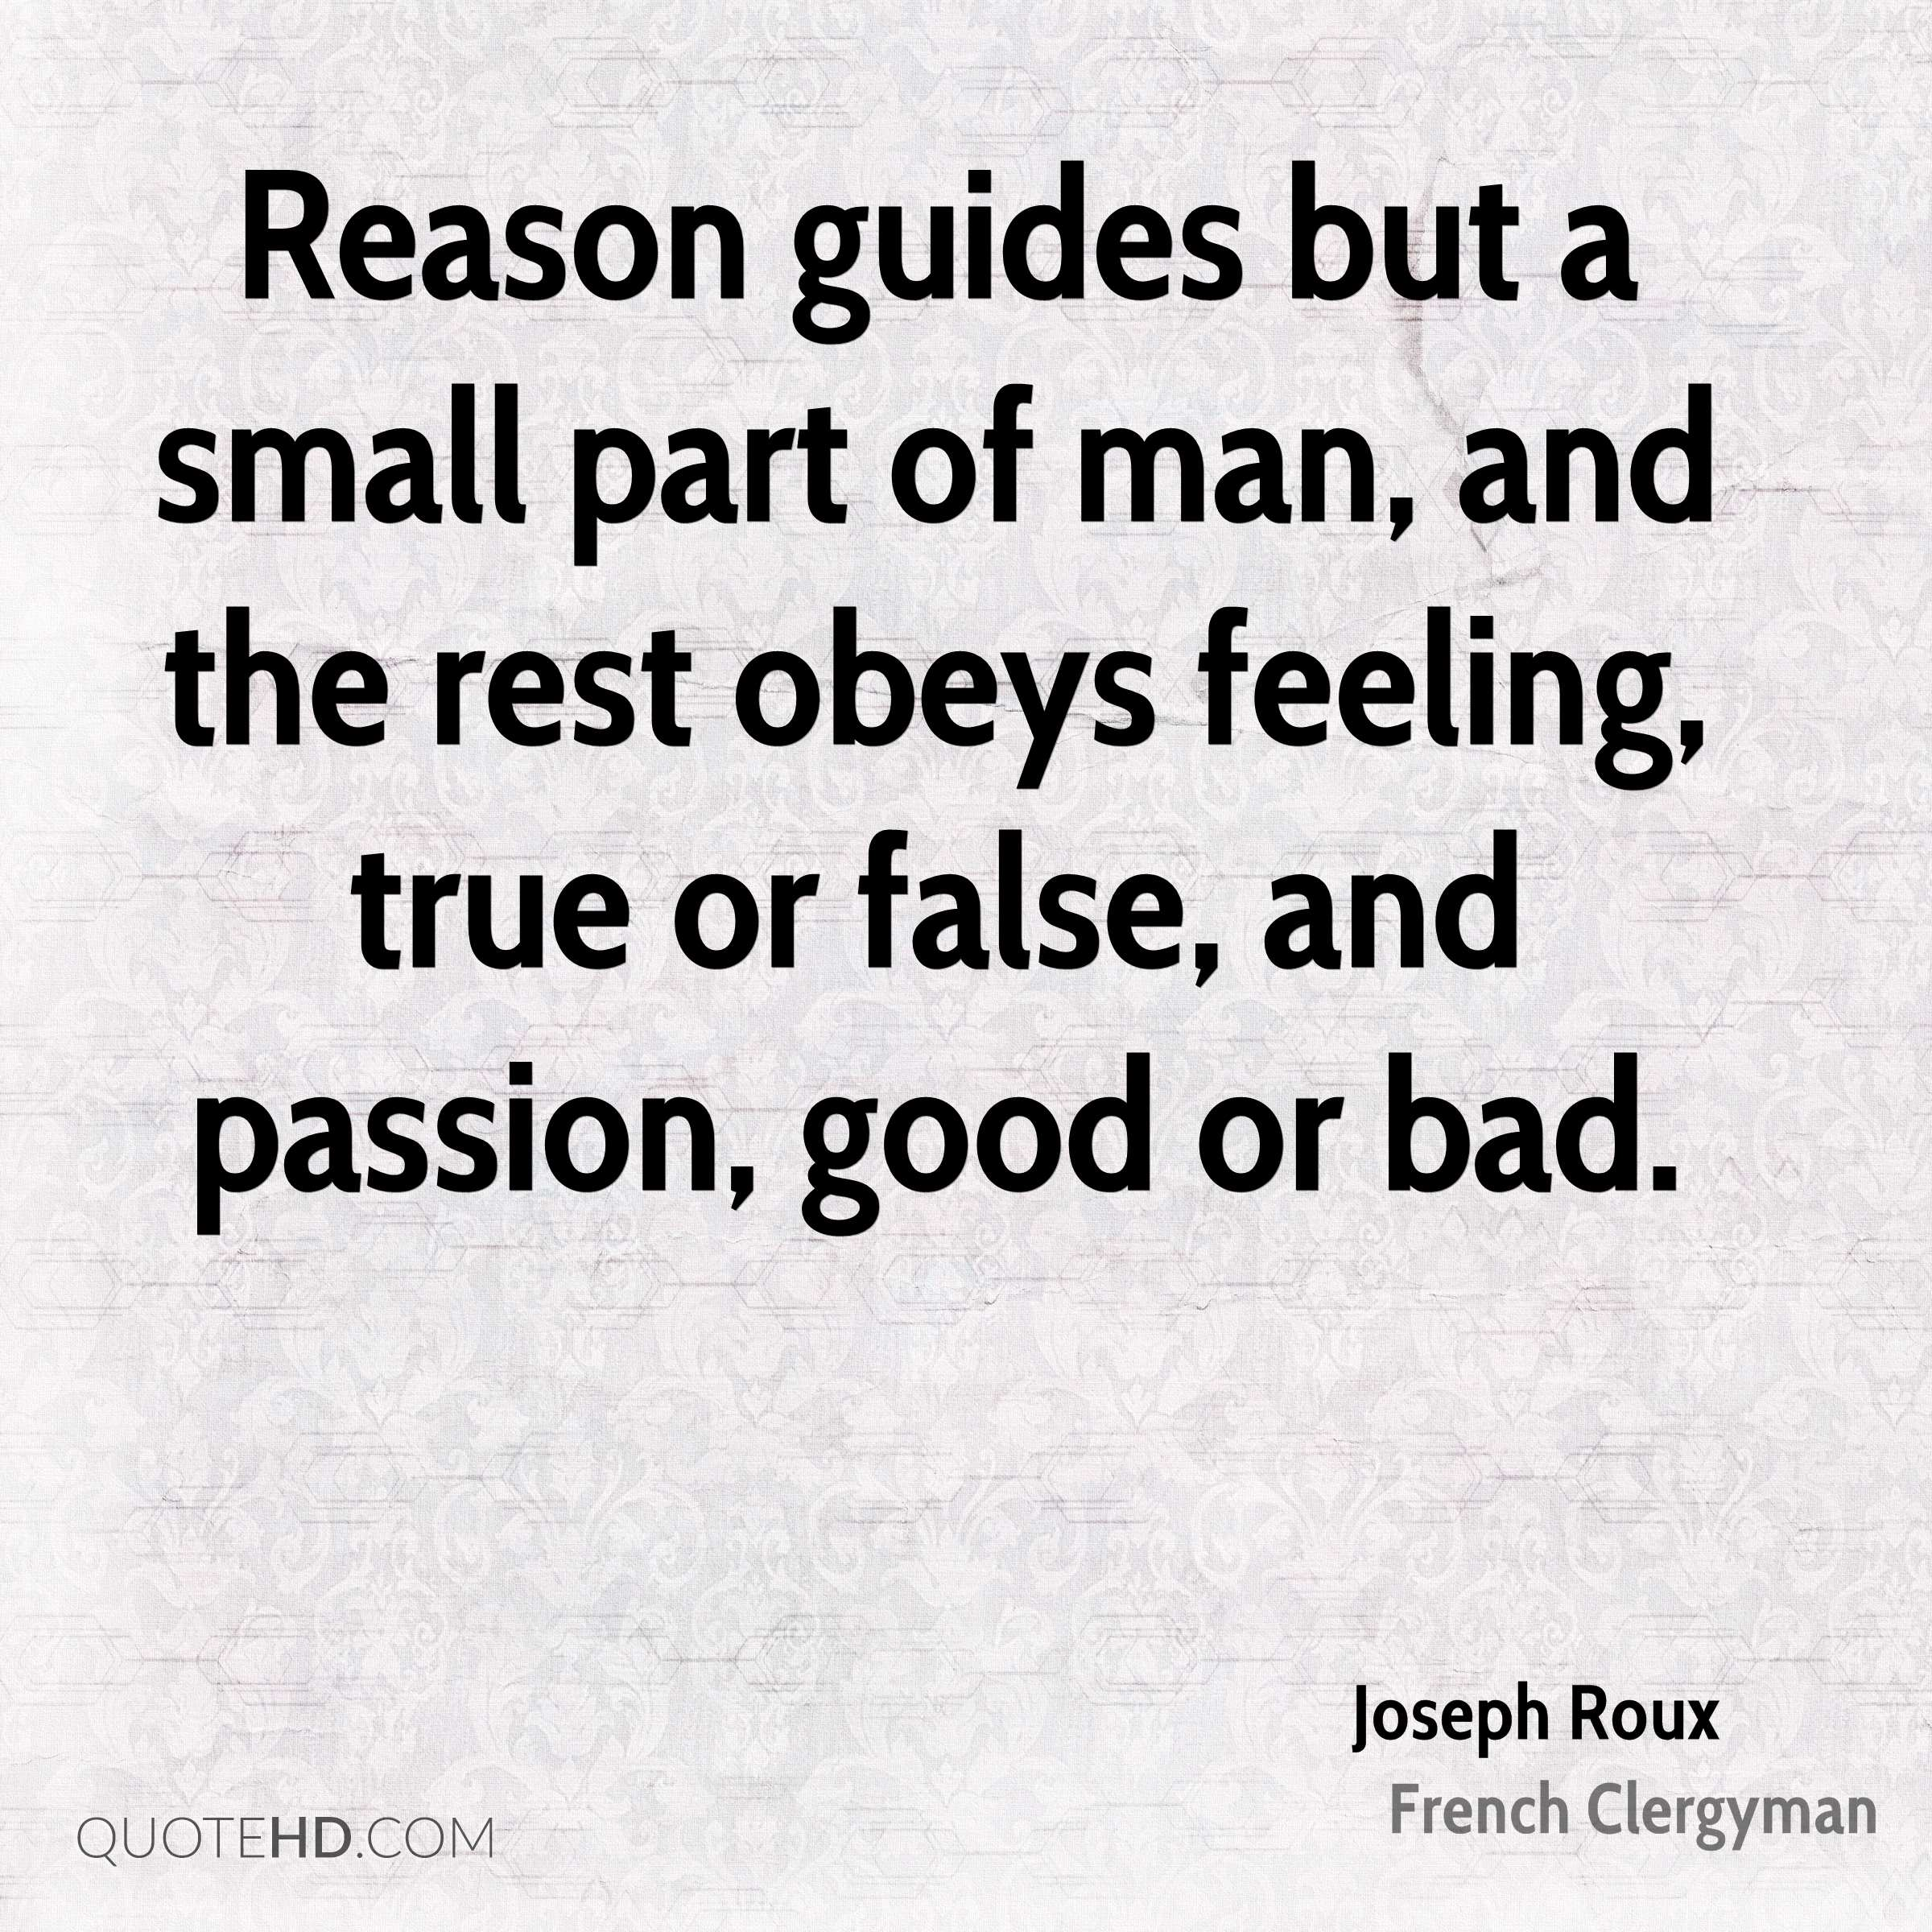 Reason guides but a small part of man, and the rest obeys feeling, true or false, and passion, good or bad.